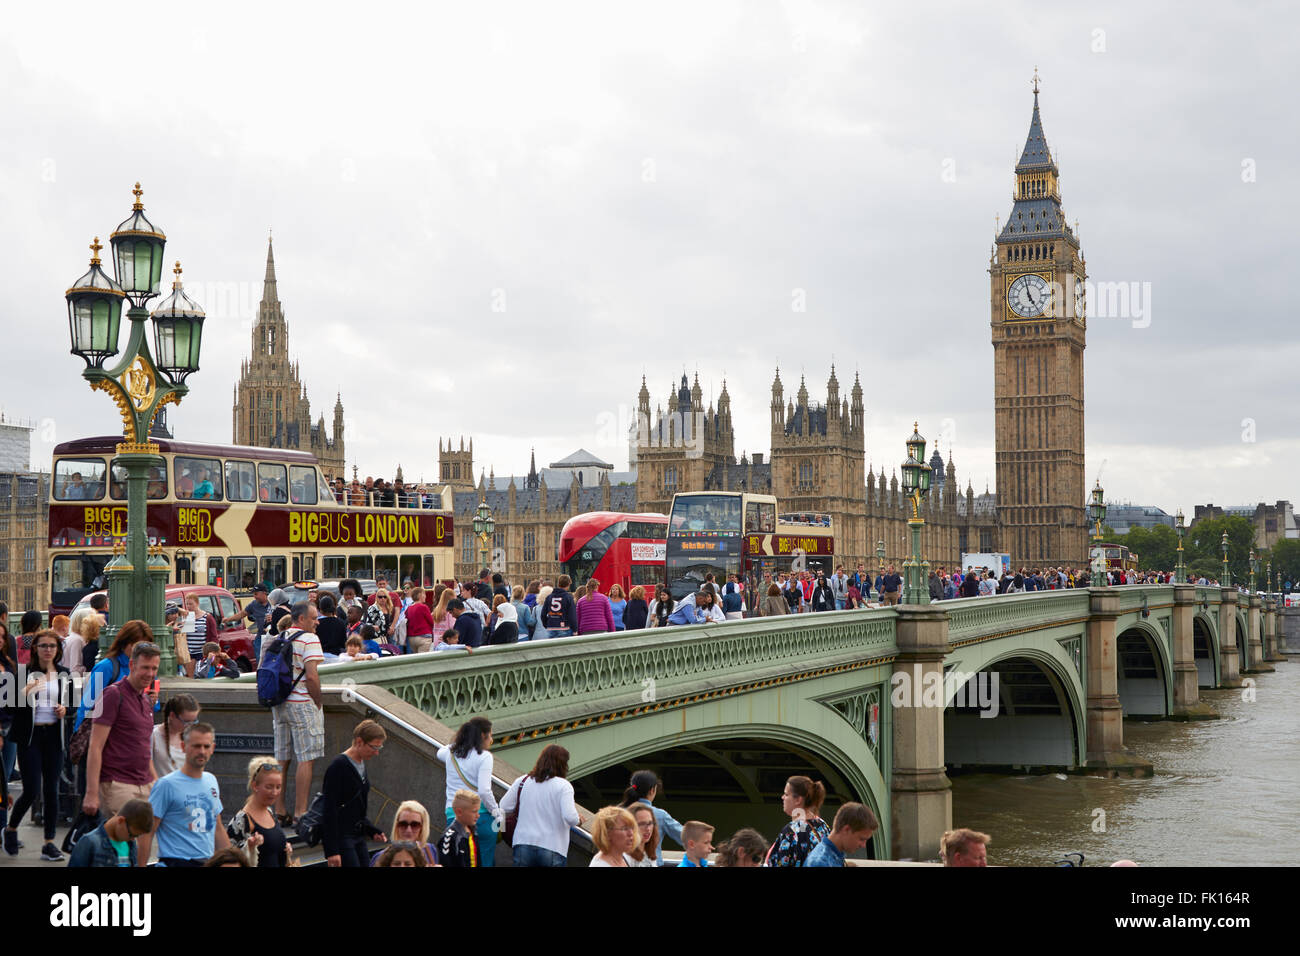 Big Ben and crowd of tourists and people in a summer day in London - Stock Image